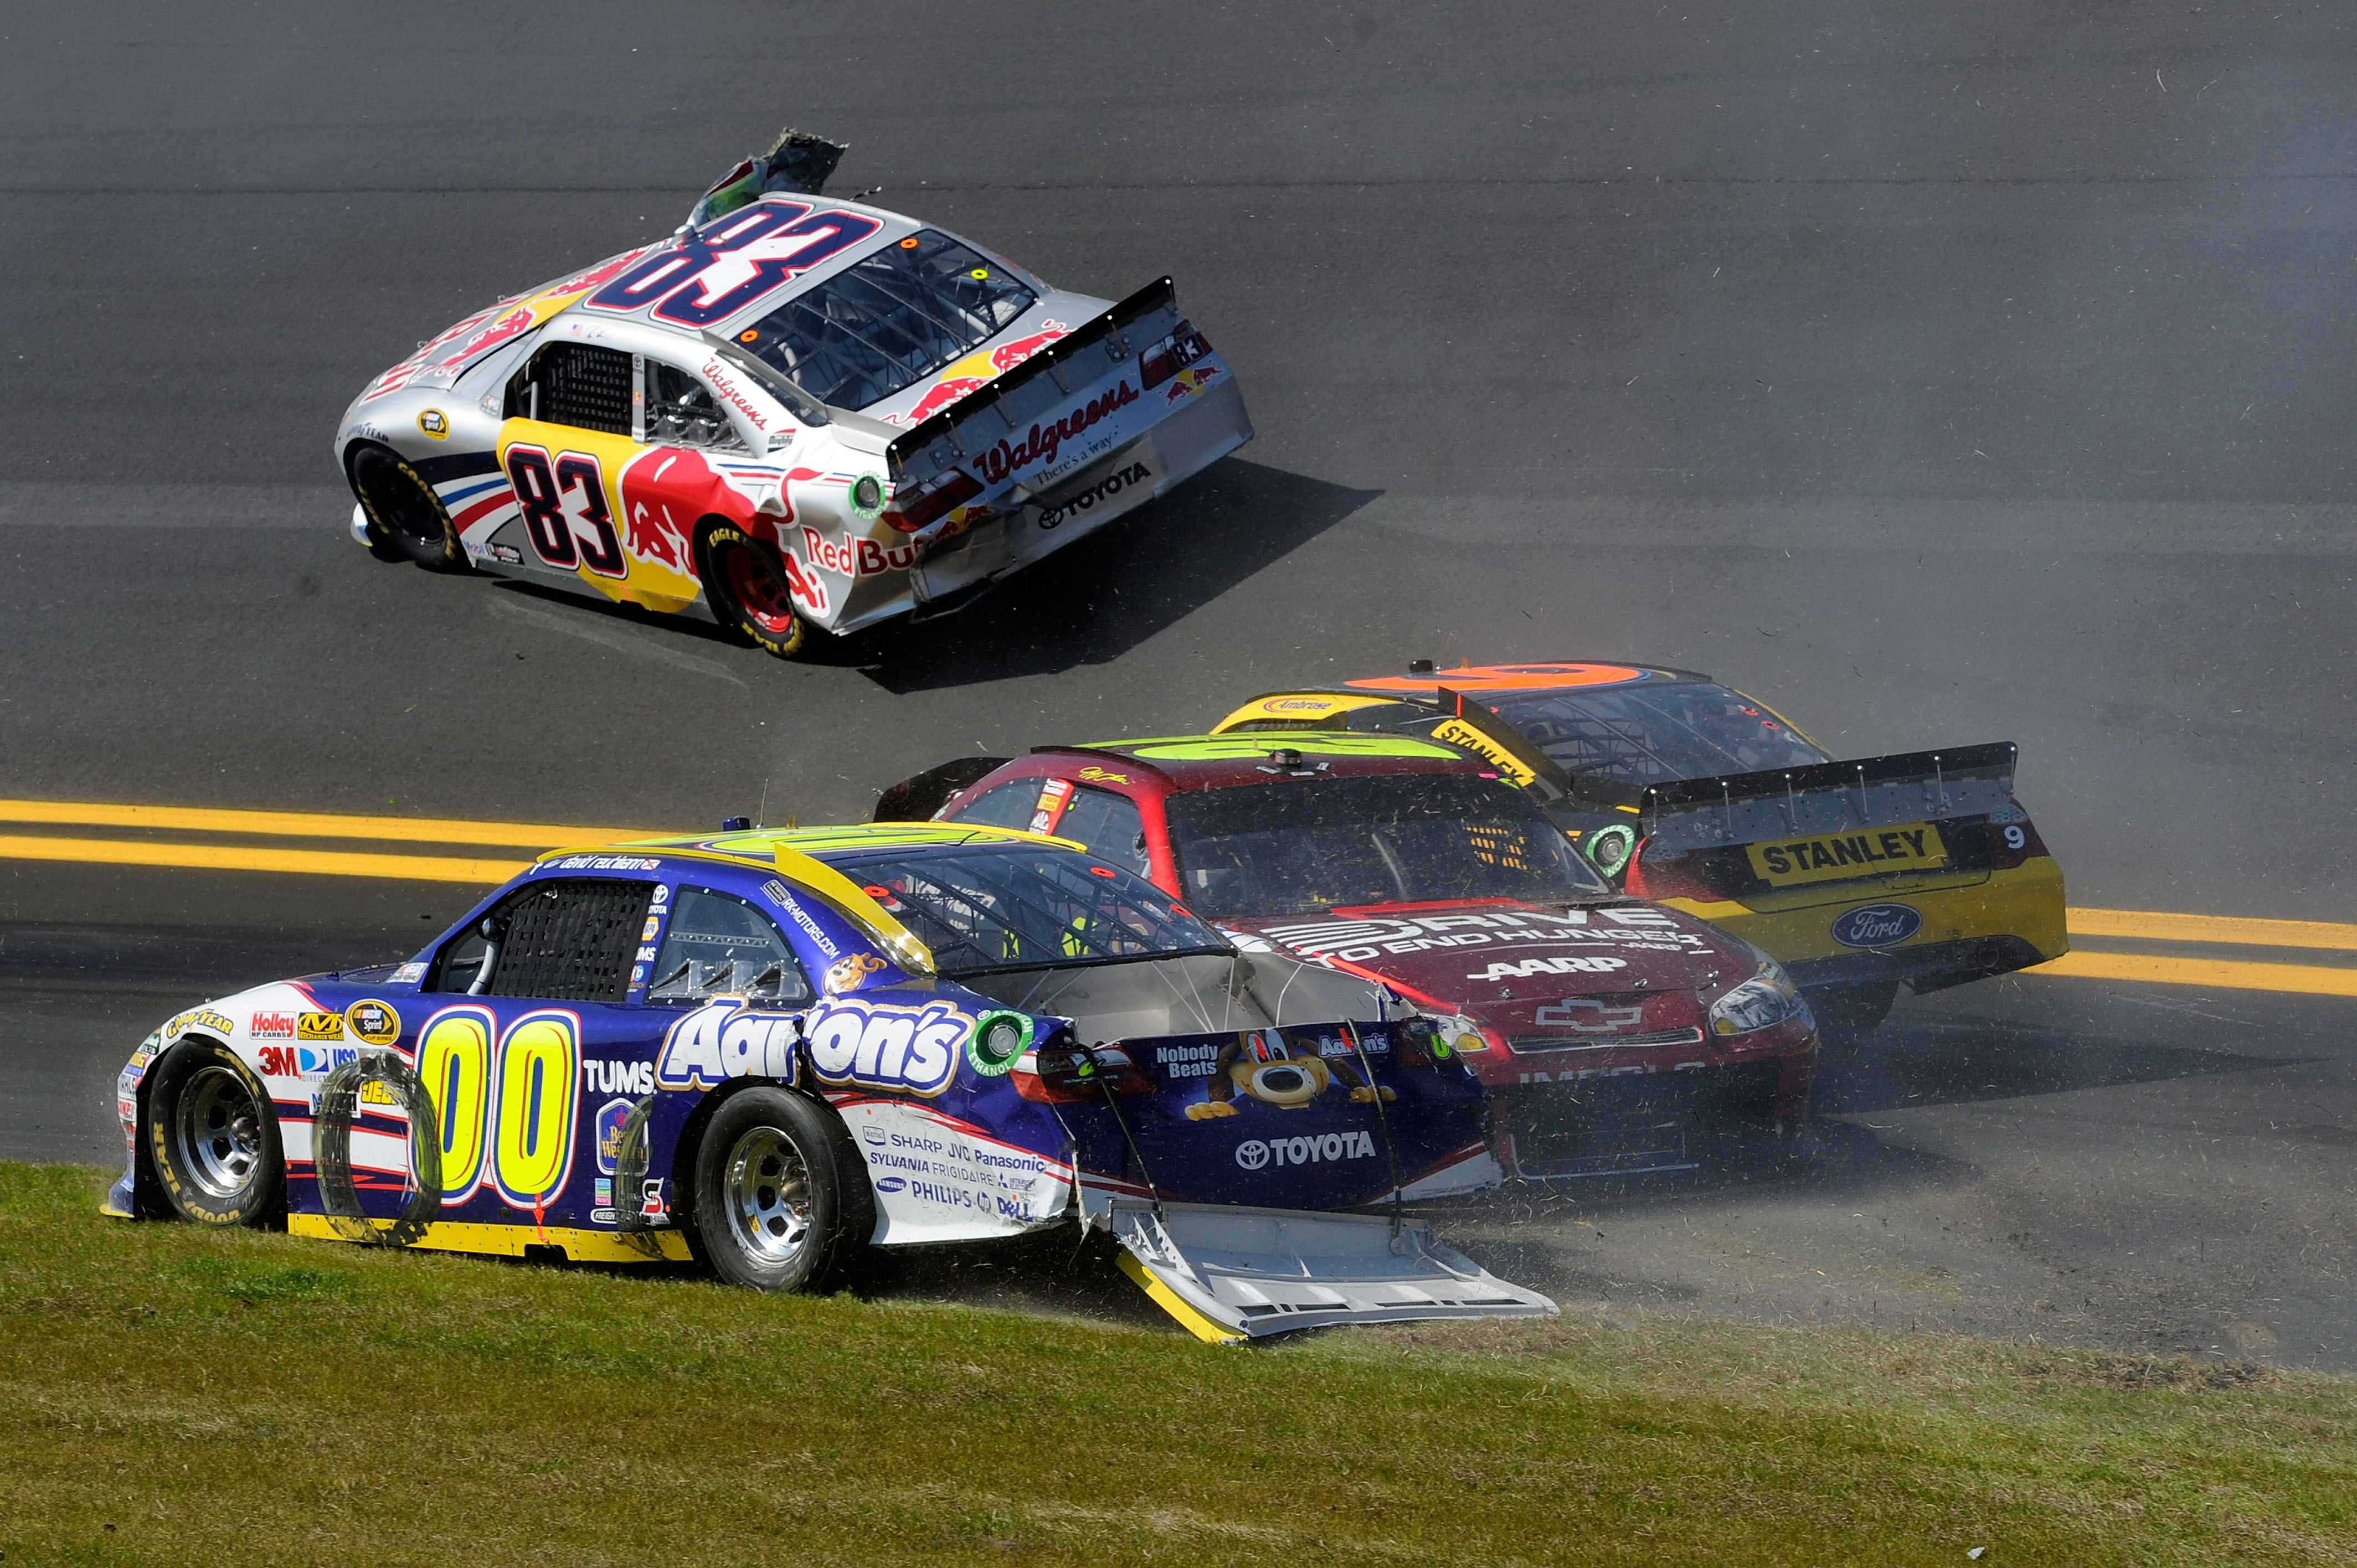 DAYTONA BEACH, FL - FEBRUARY 20:  Brian Vickers, driver of the #83 Red Bull Toyota, Marcos Ambrose, driver of the #9 Stanley Ford, Jeff Gordon, driver of the #24 Drive to End Hunger Chevrolet, and David Reutimann, driver of the #00 Aaron's Dream Machine T